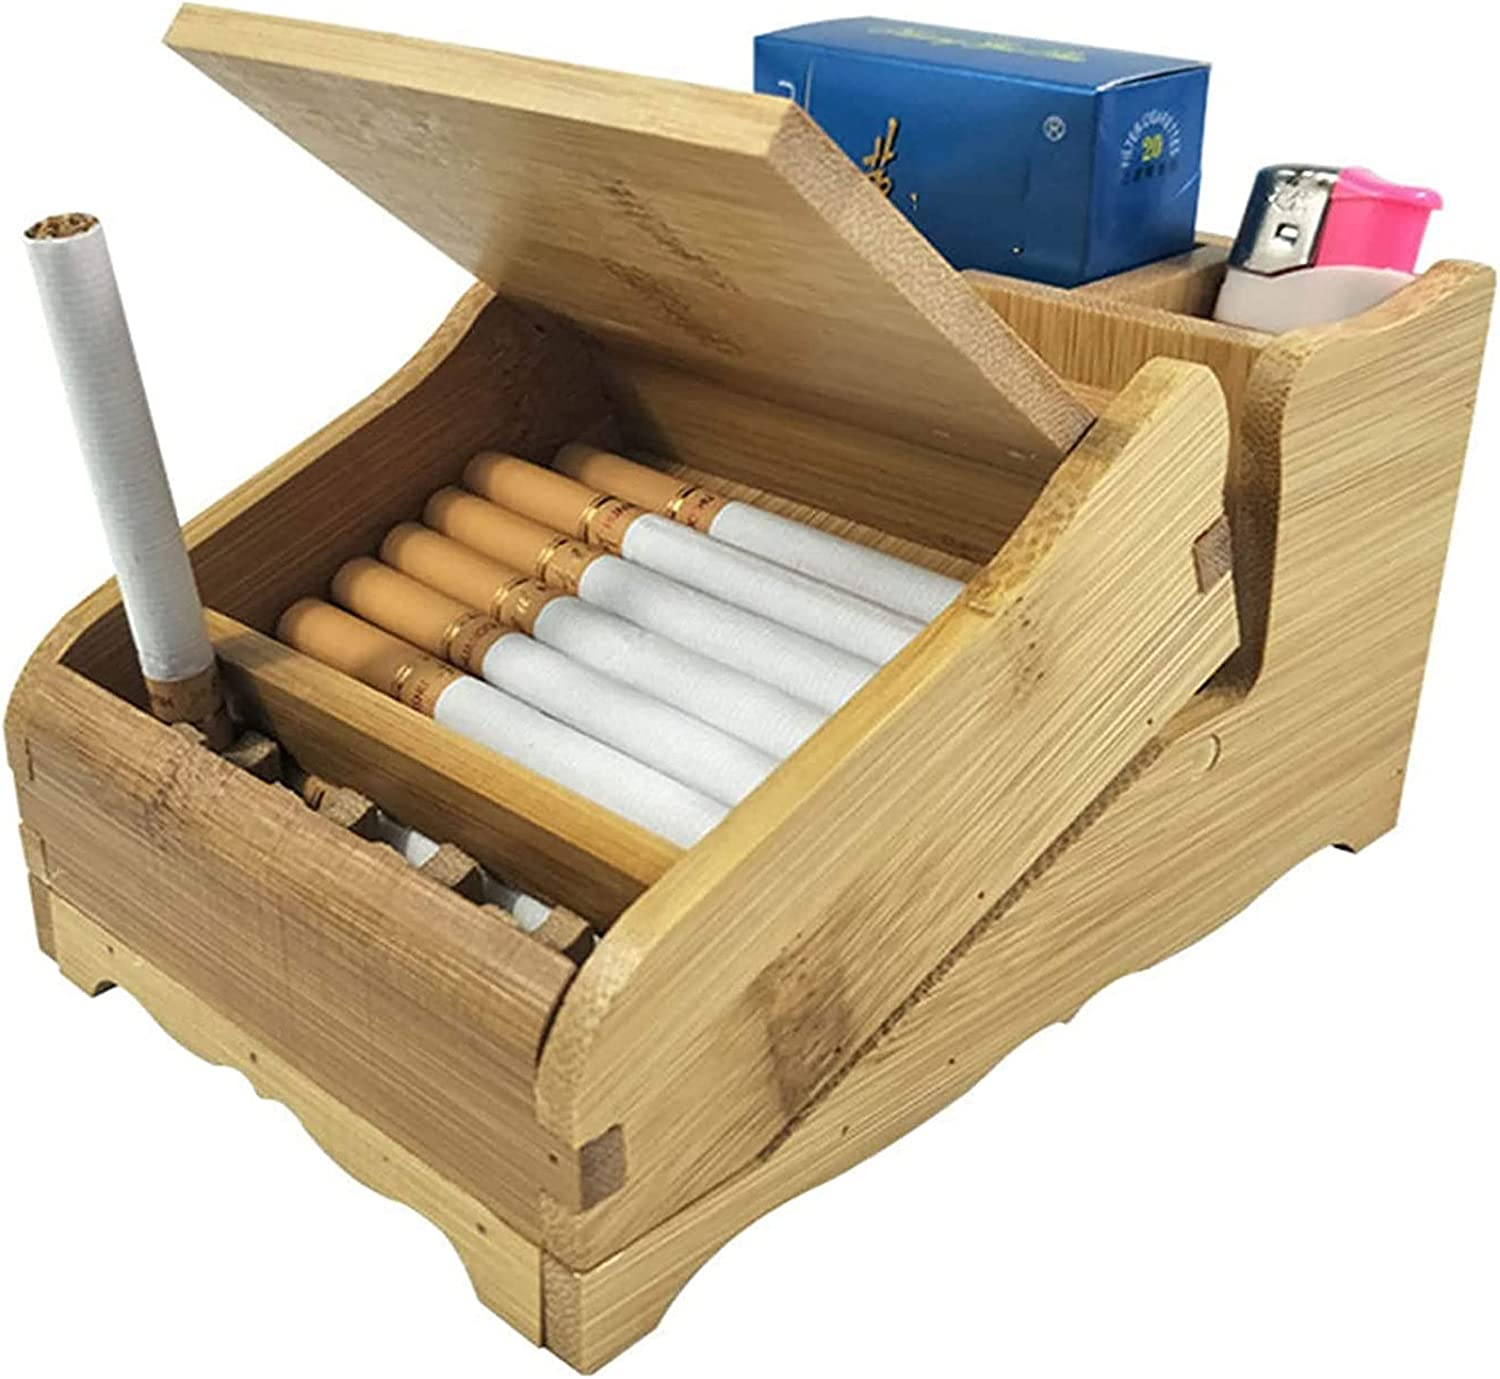 FGDFGDG 20 Sticks of Wooden 1 Portland Mall year warranty Cigarette Pop-up Automatic